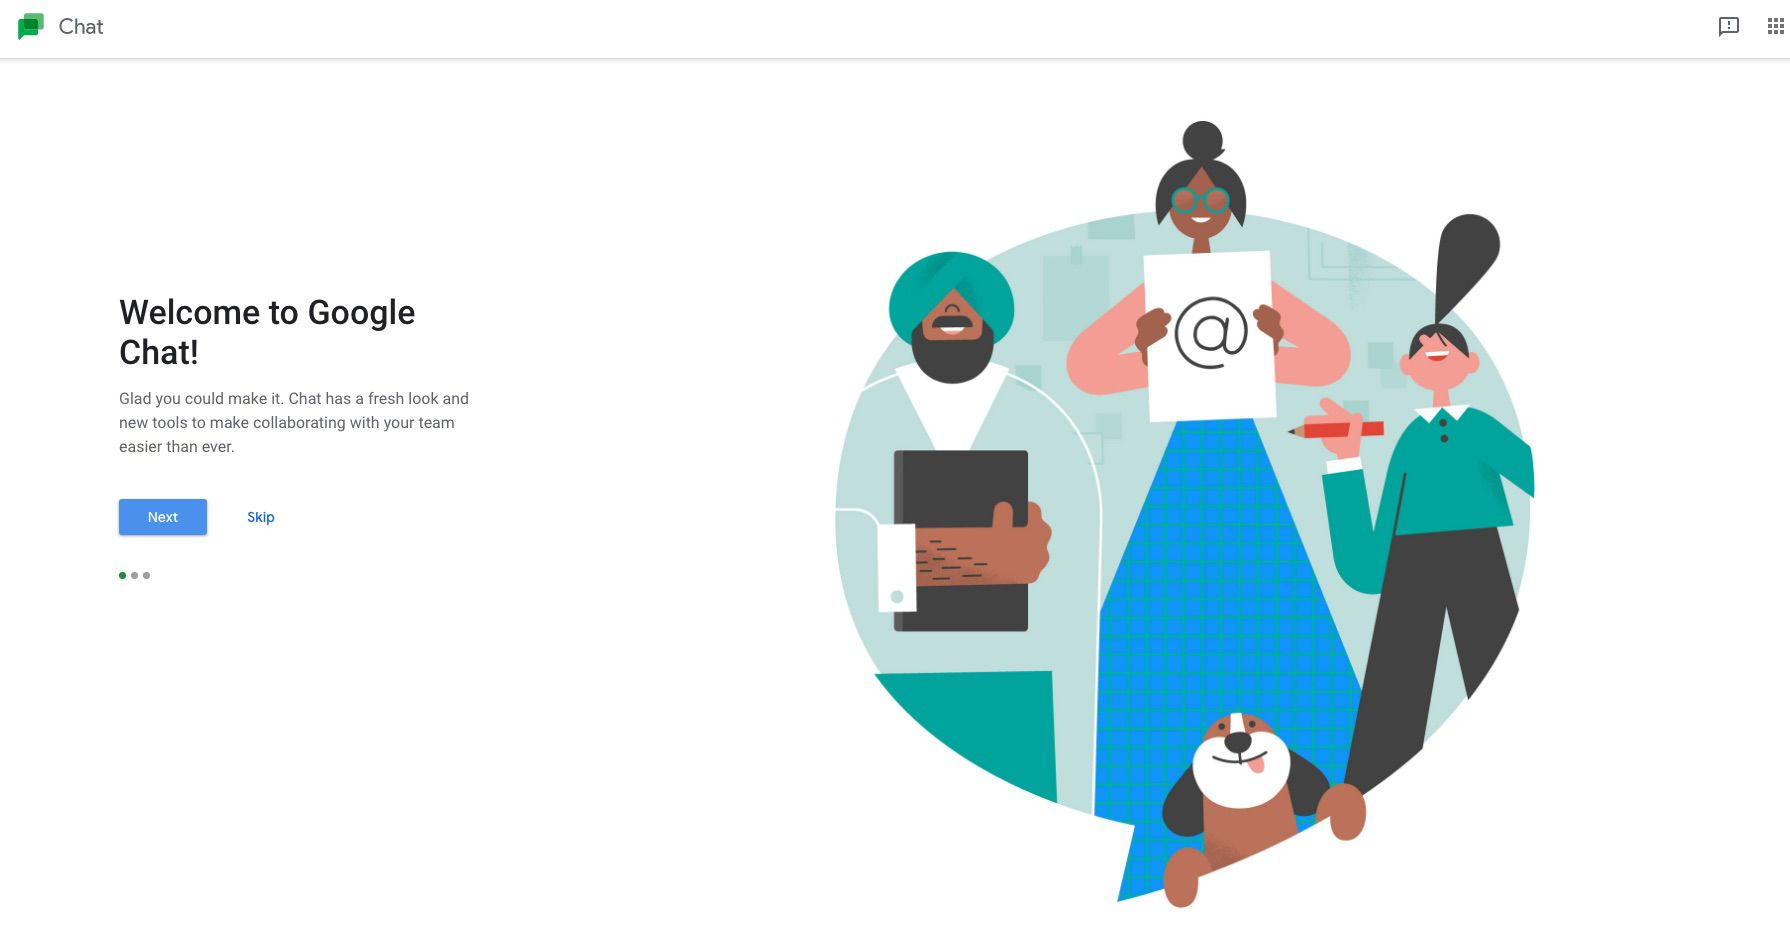 Google Chat information page